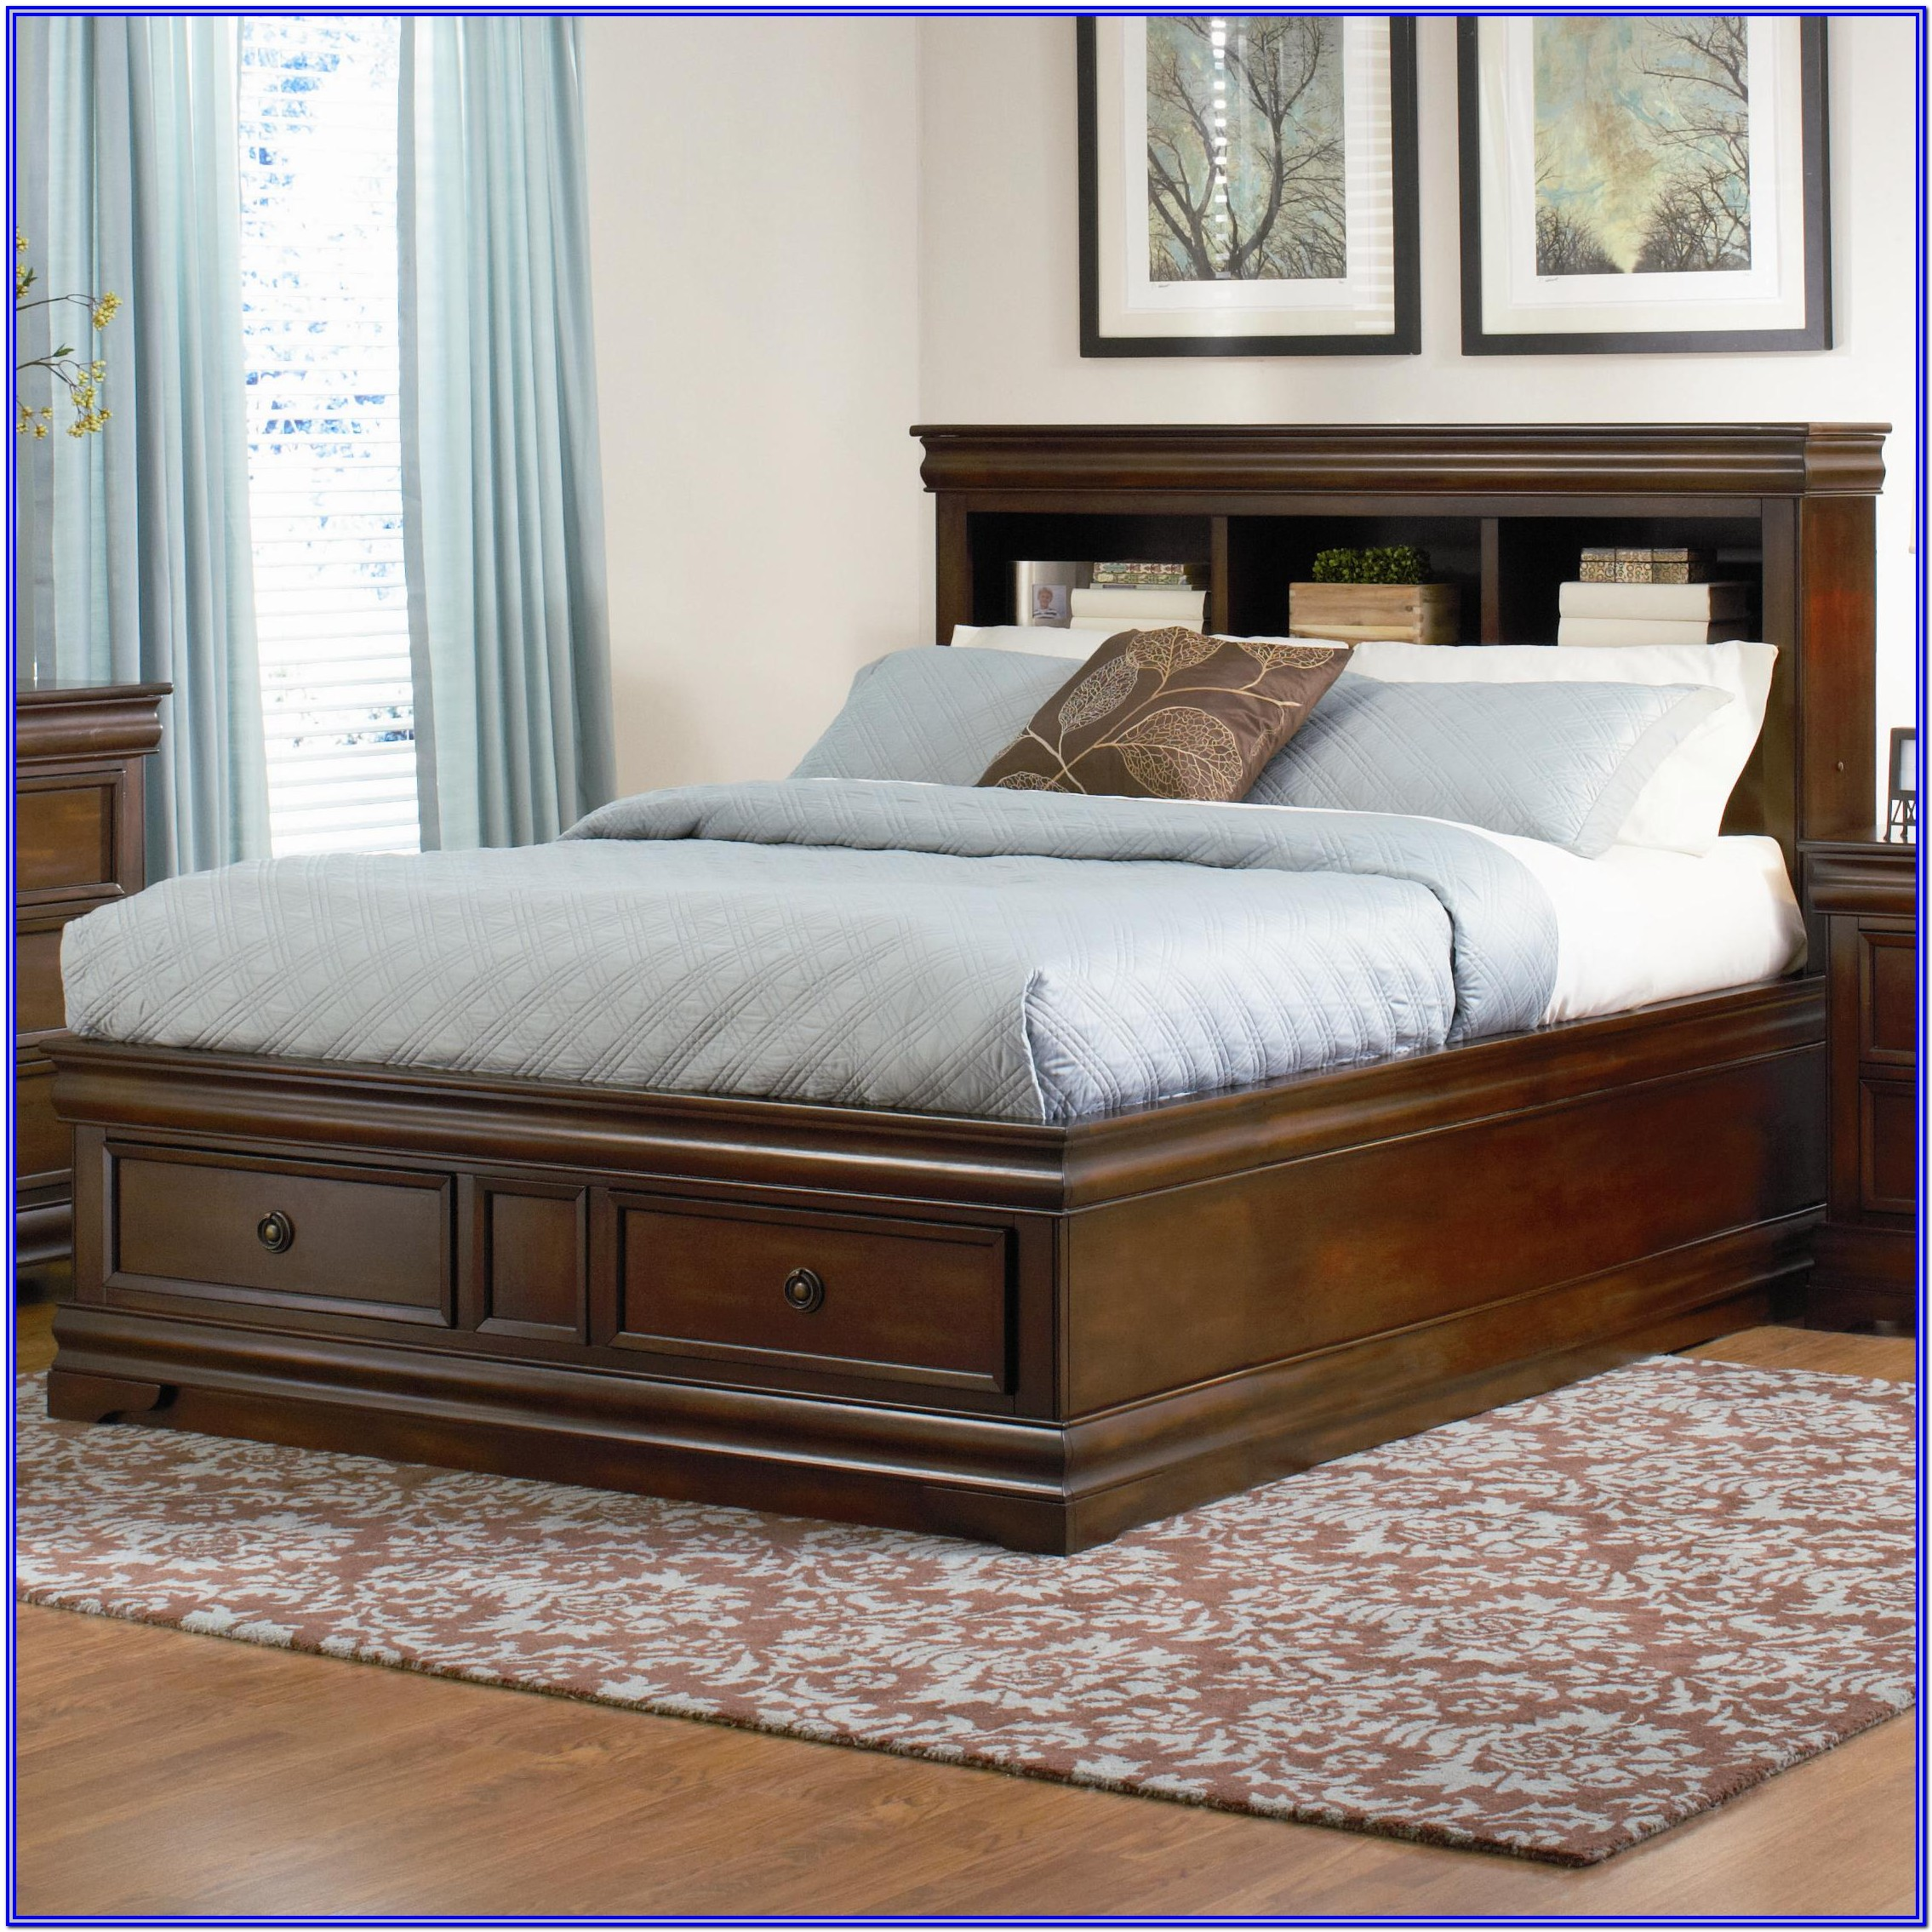 King Size Adjustable Bed With Storage